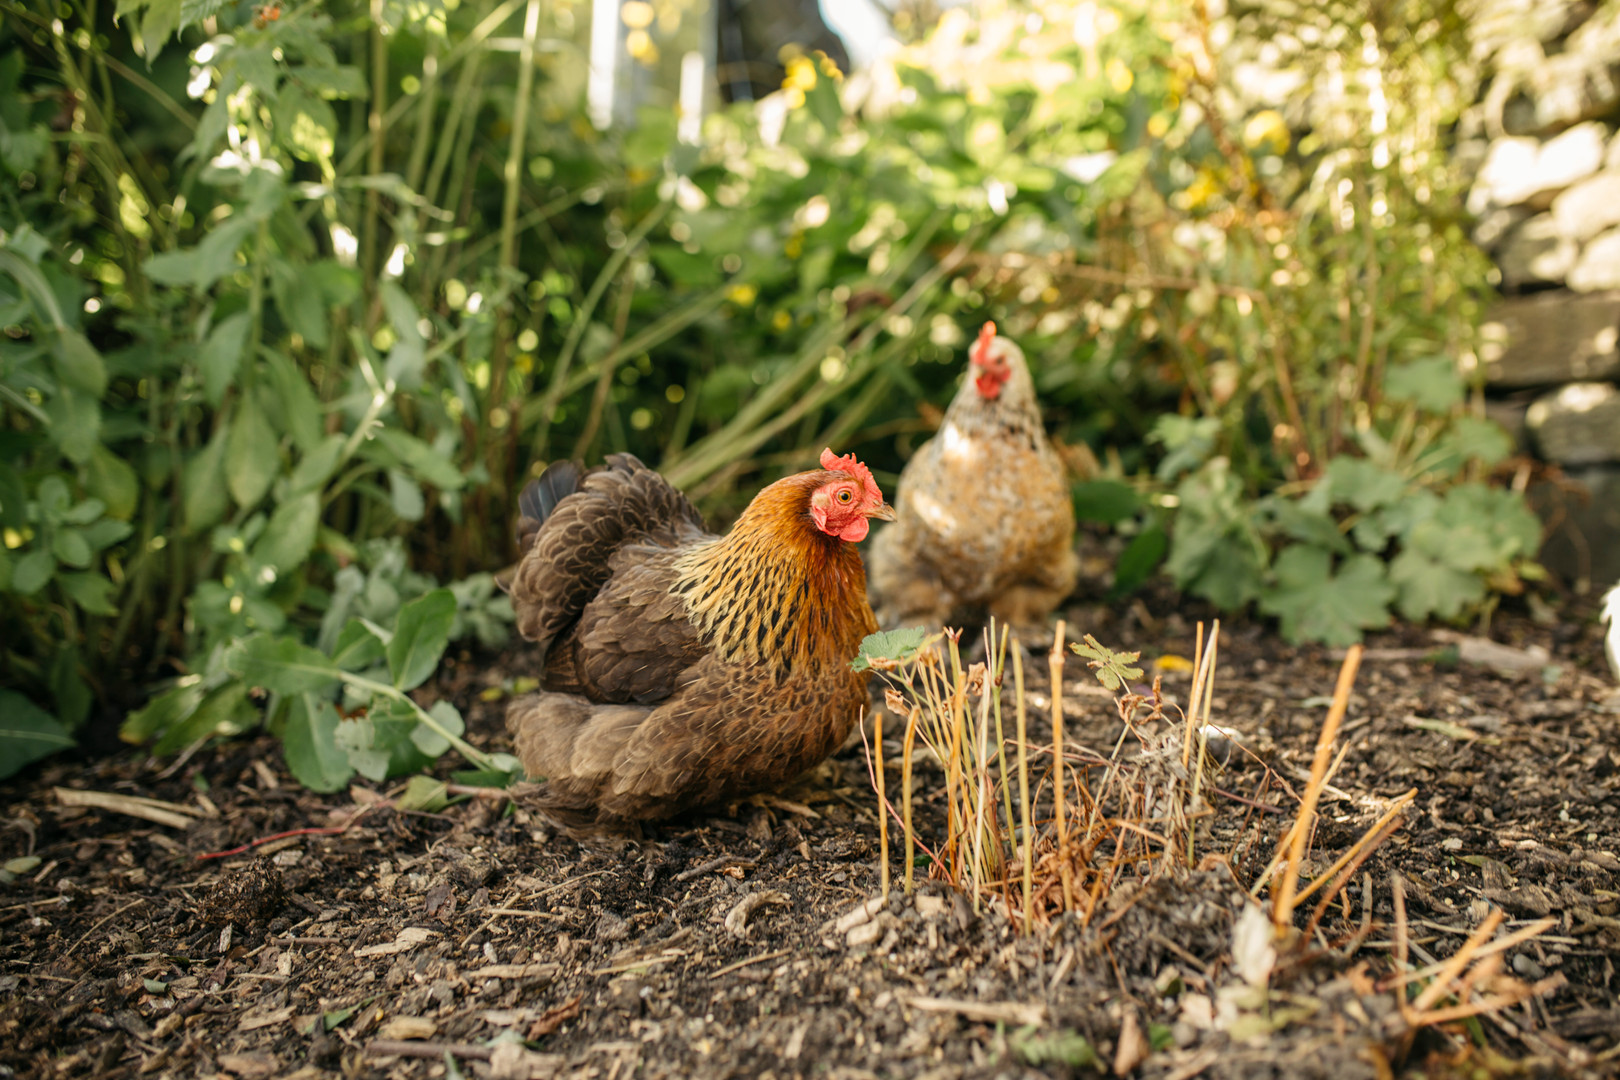 Flower patch chickens keeping an eye on things